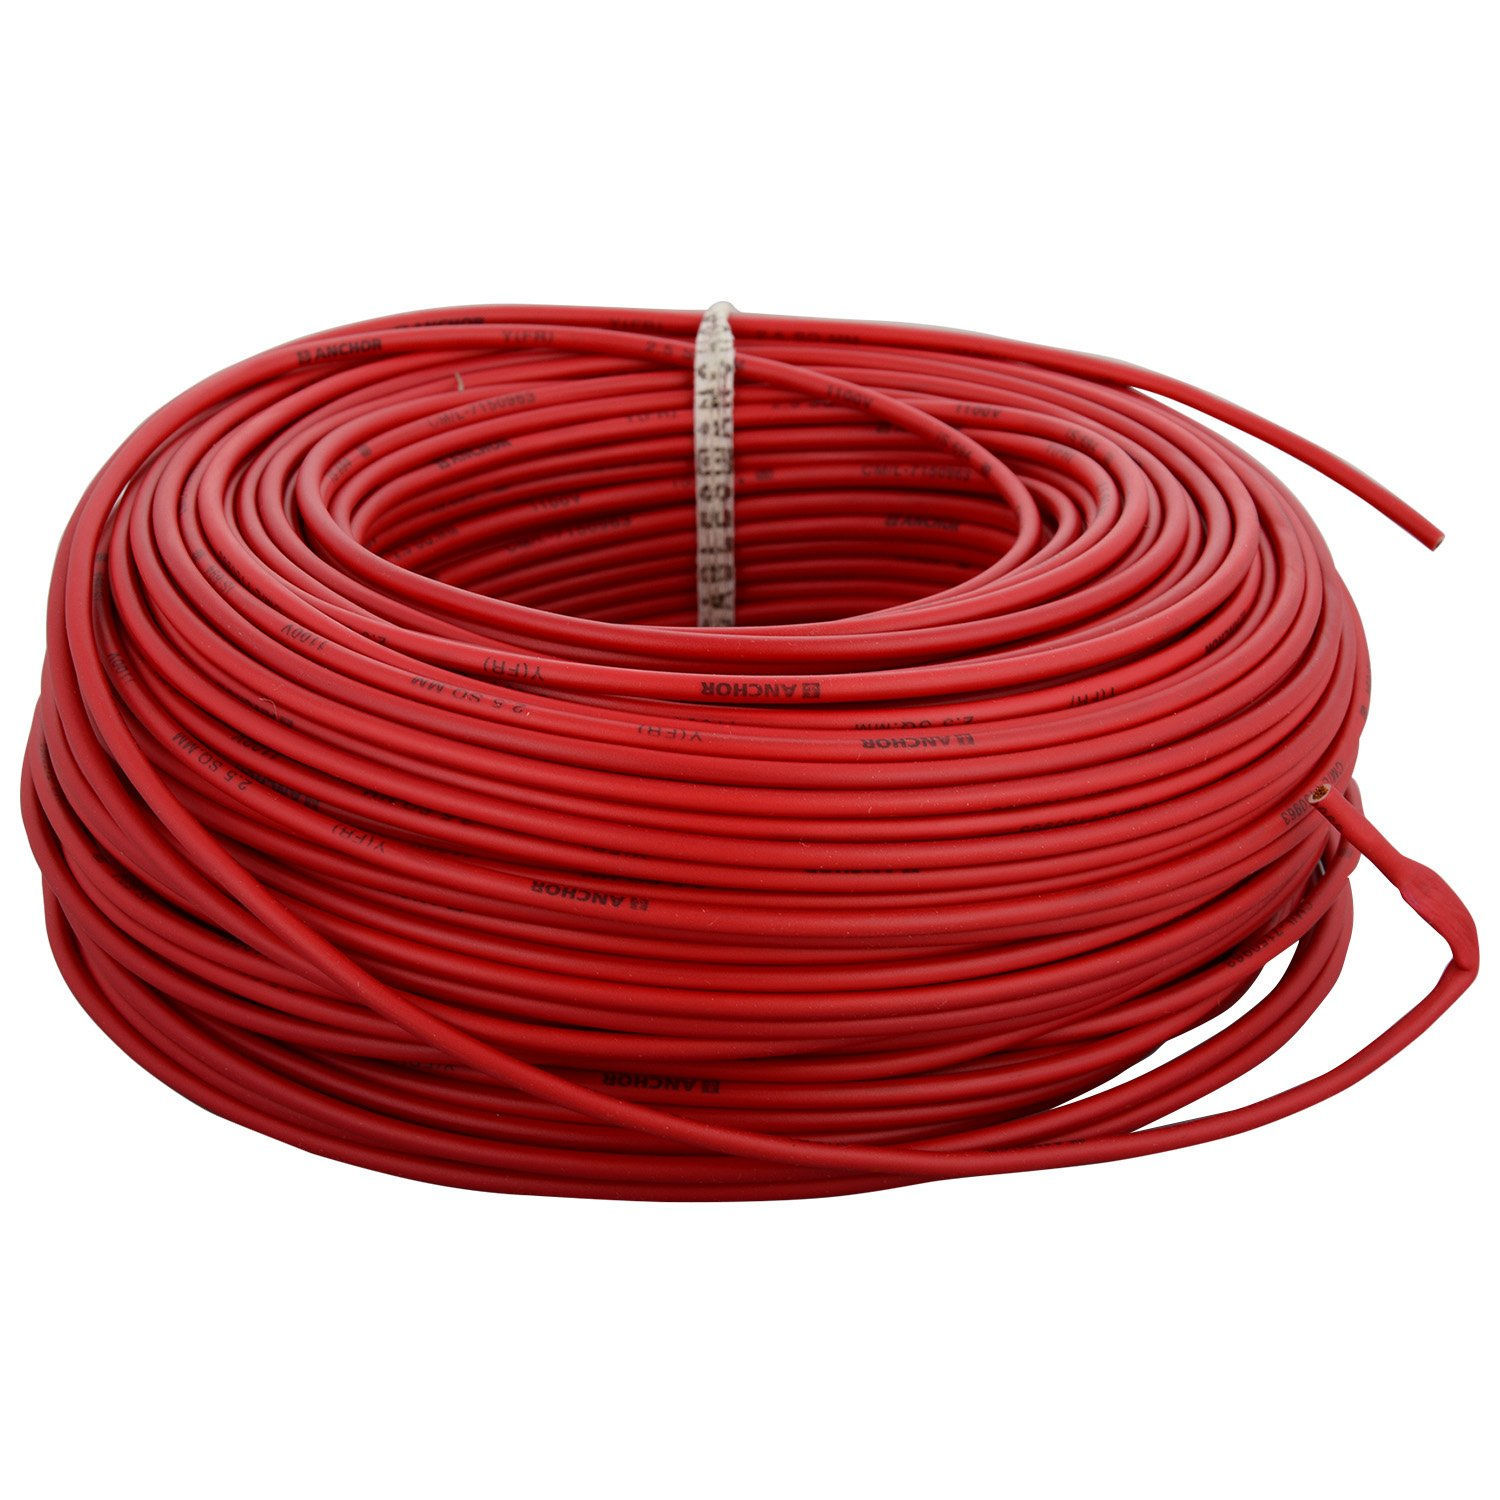 Anchor Insulated Copper Pvc Cable 25 Sq Mm Wire Red Flat Electrical Quality For Sale